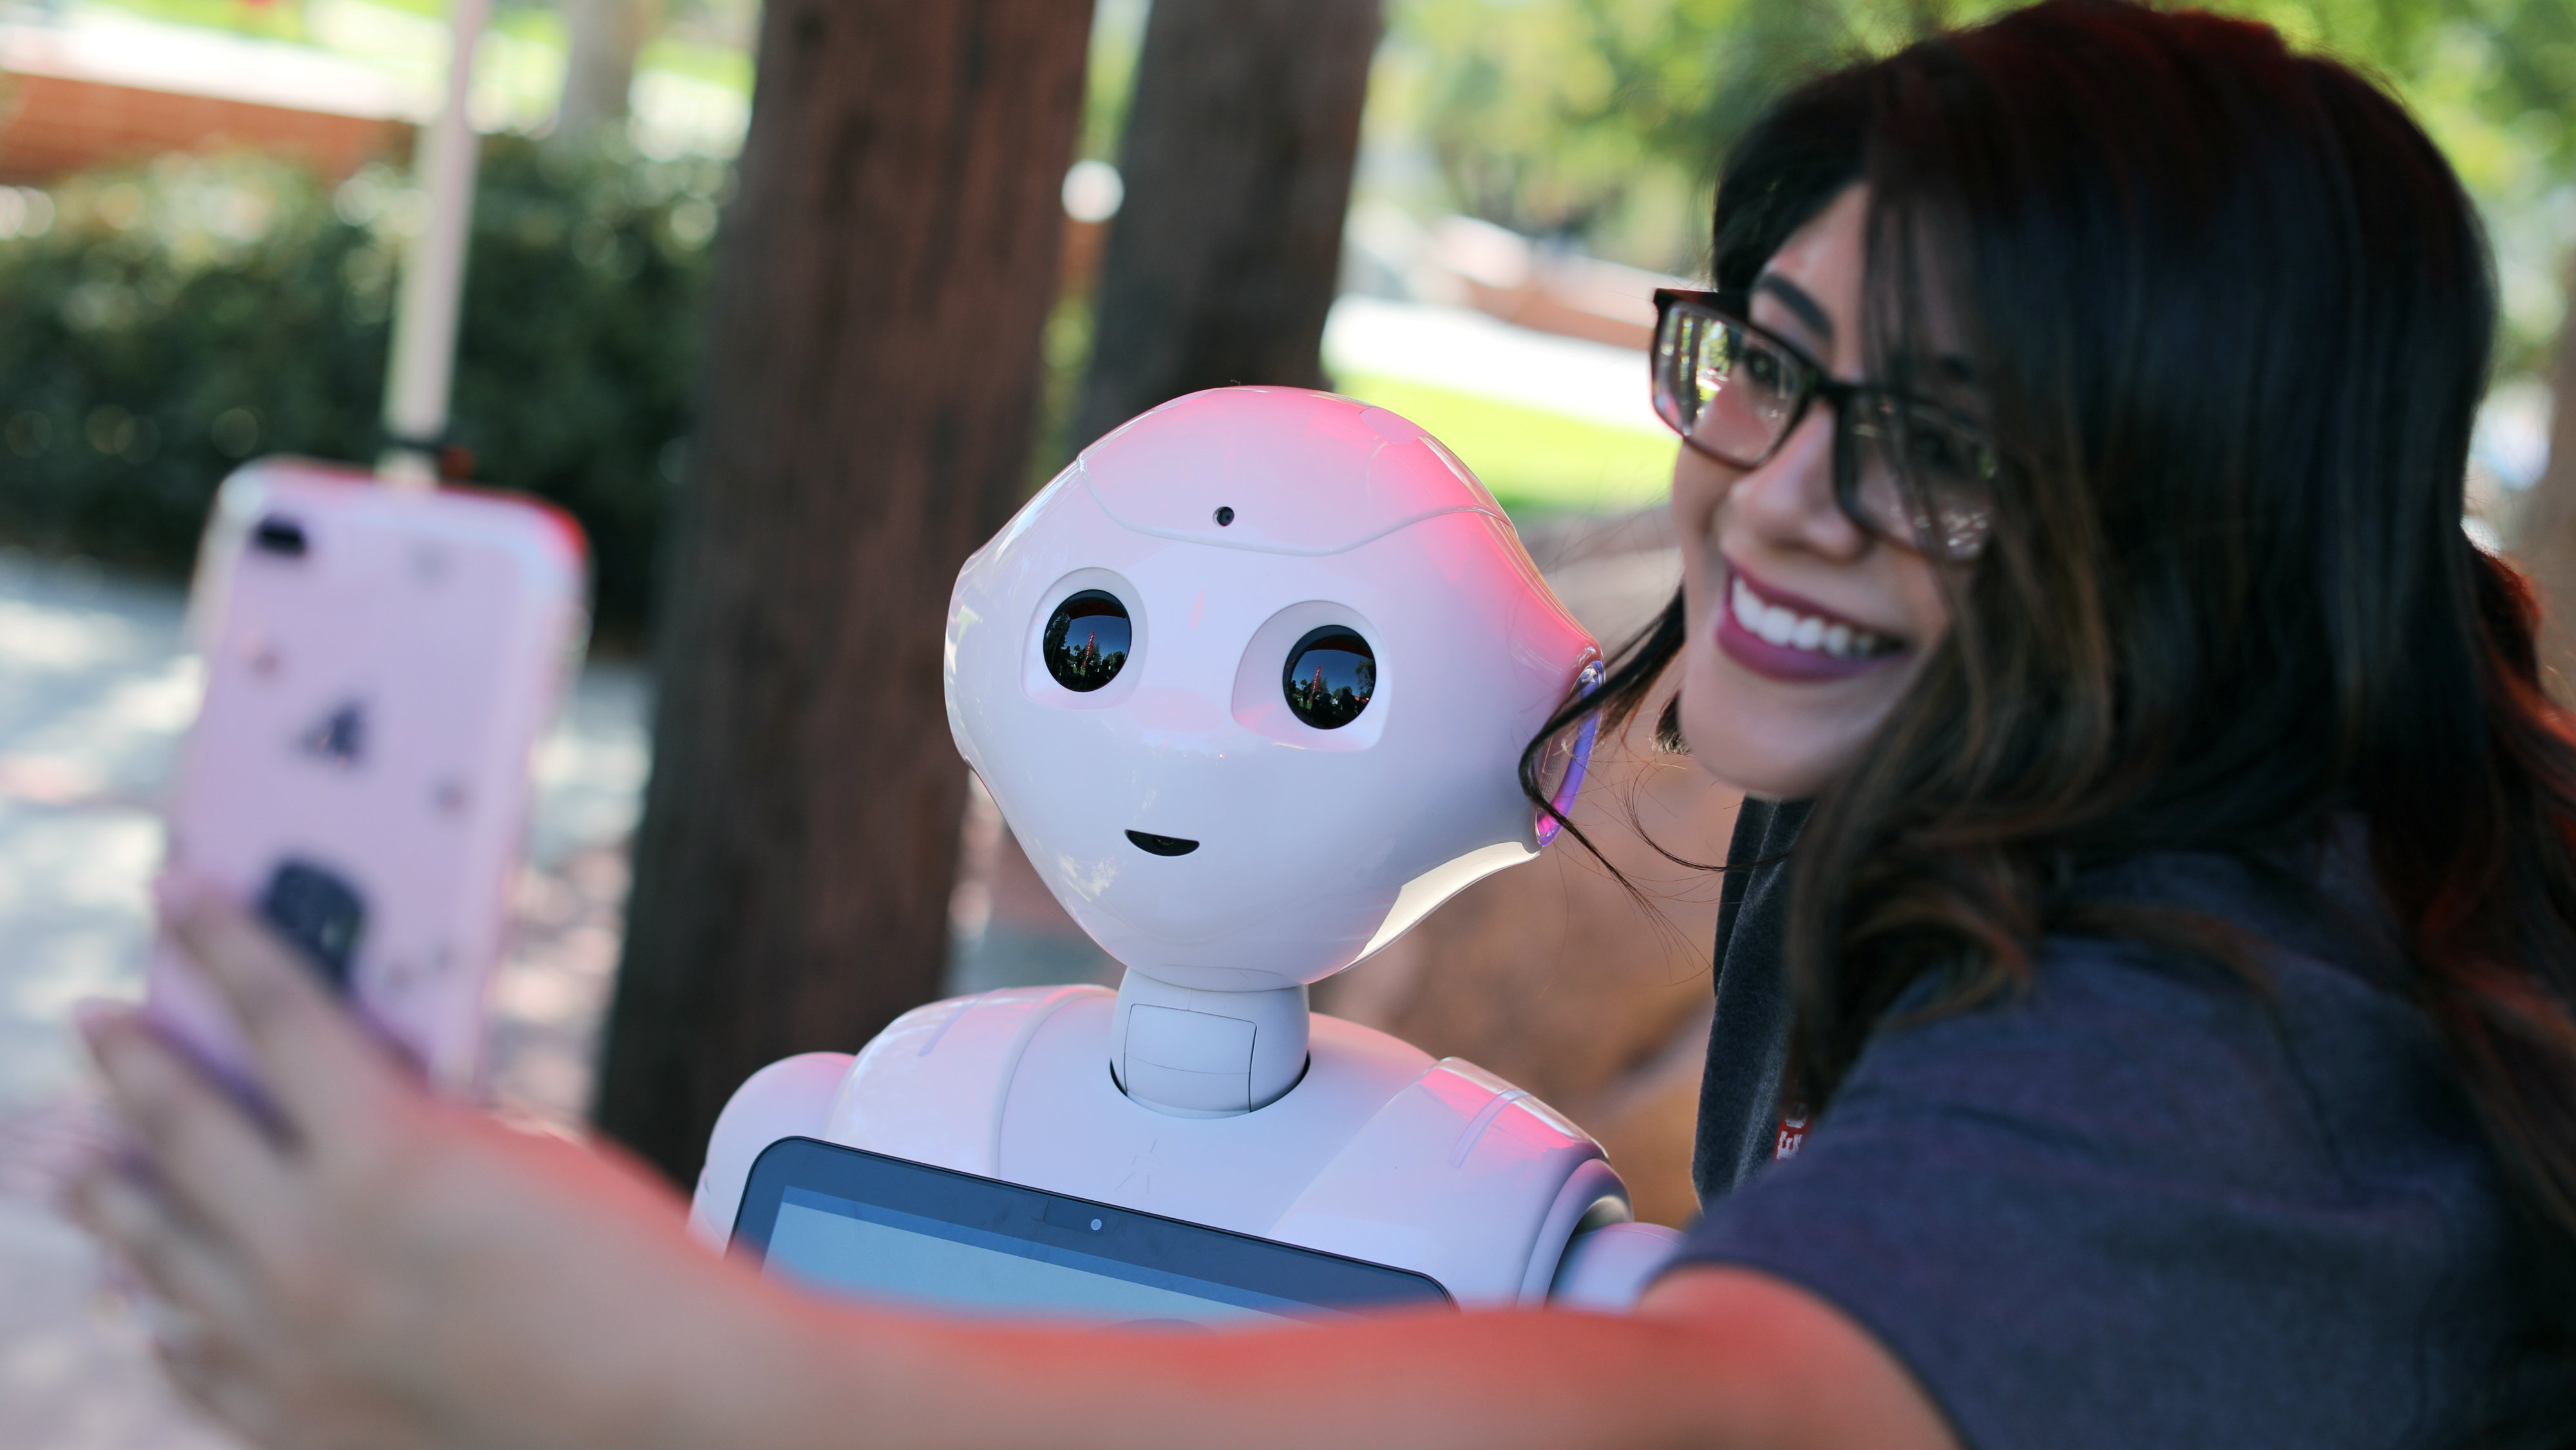 """San Marcos student Amaris Gonzalez takes a selfie with """"Pepper"""" an artificial Intelligence project utilizing a humanoid robot from French company Aldebaran and reprogramed as an assistant for students attending Palomar College in San Marcos, California, U.S. October 10, 2017."""